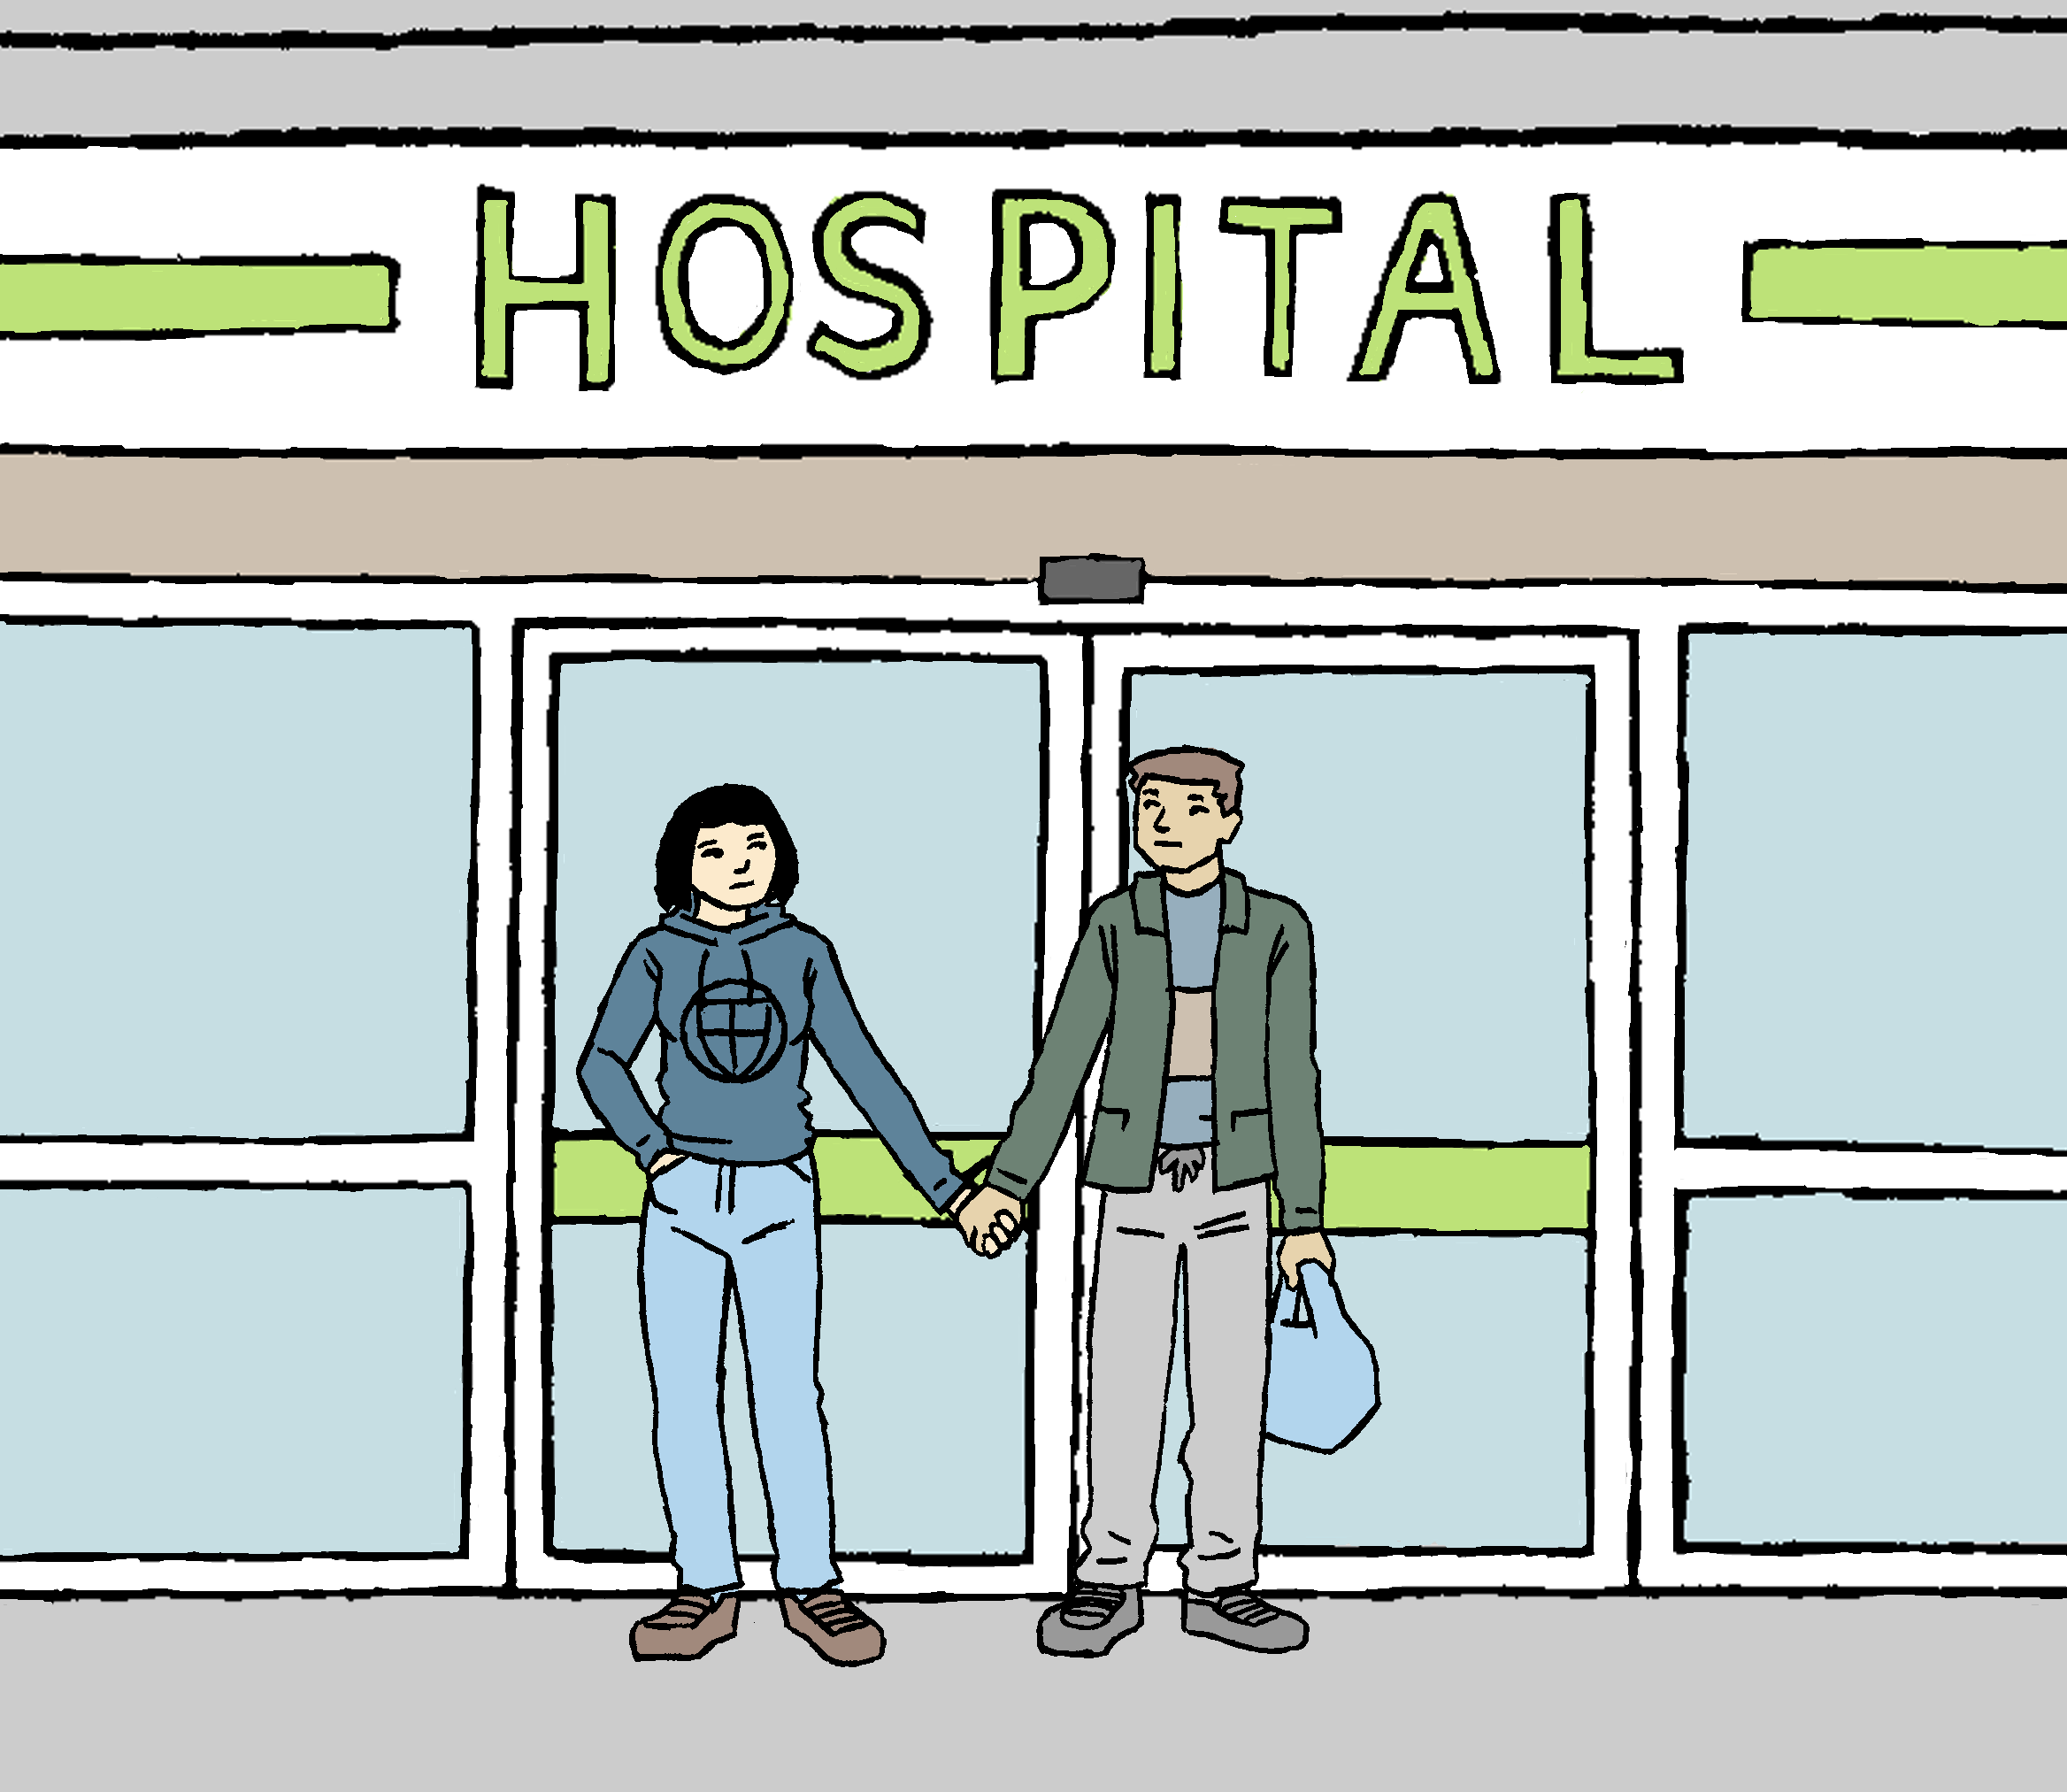 Cartoon showing two people holding hands outside of the hospital doors.